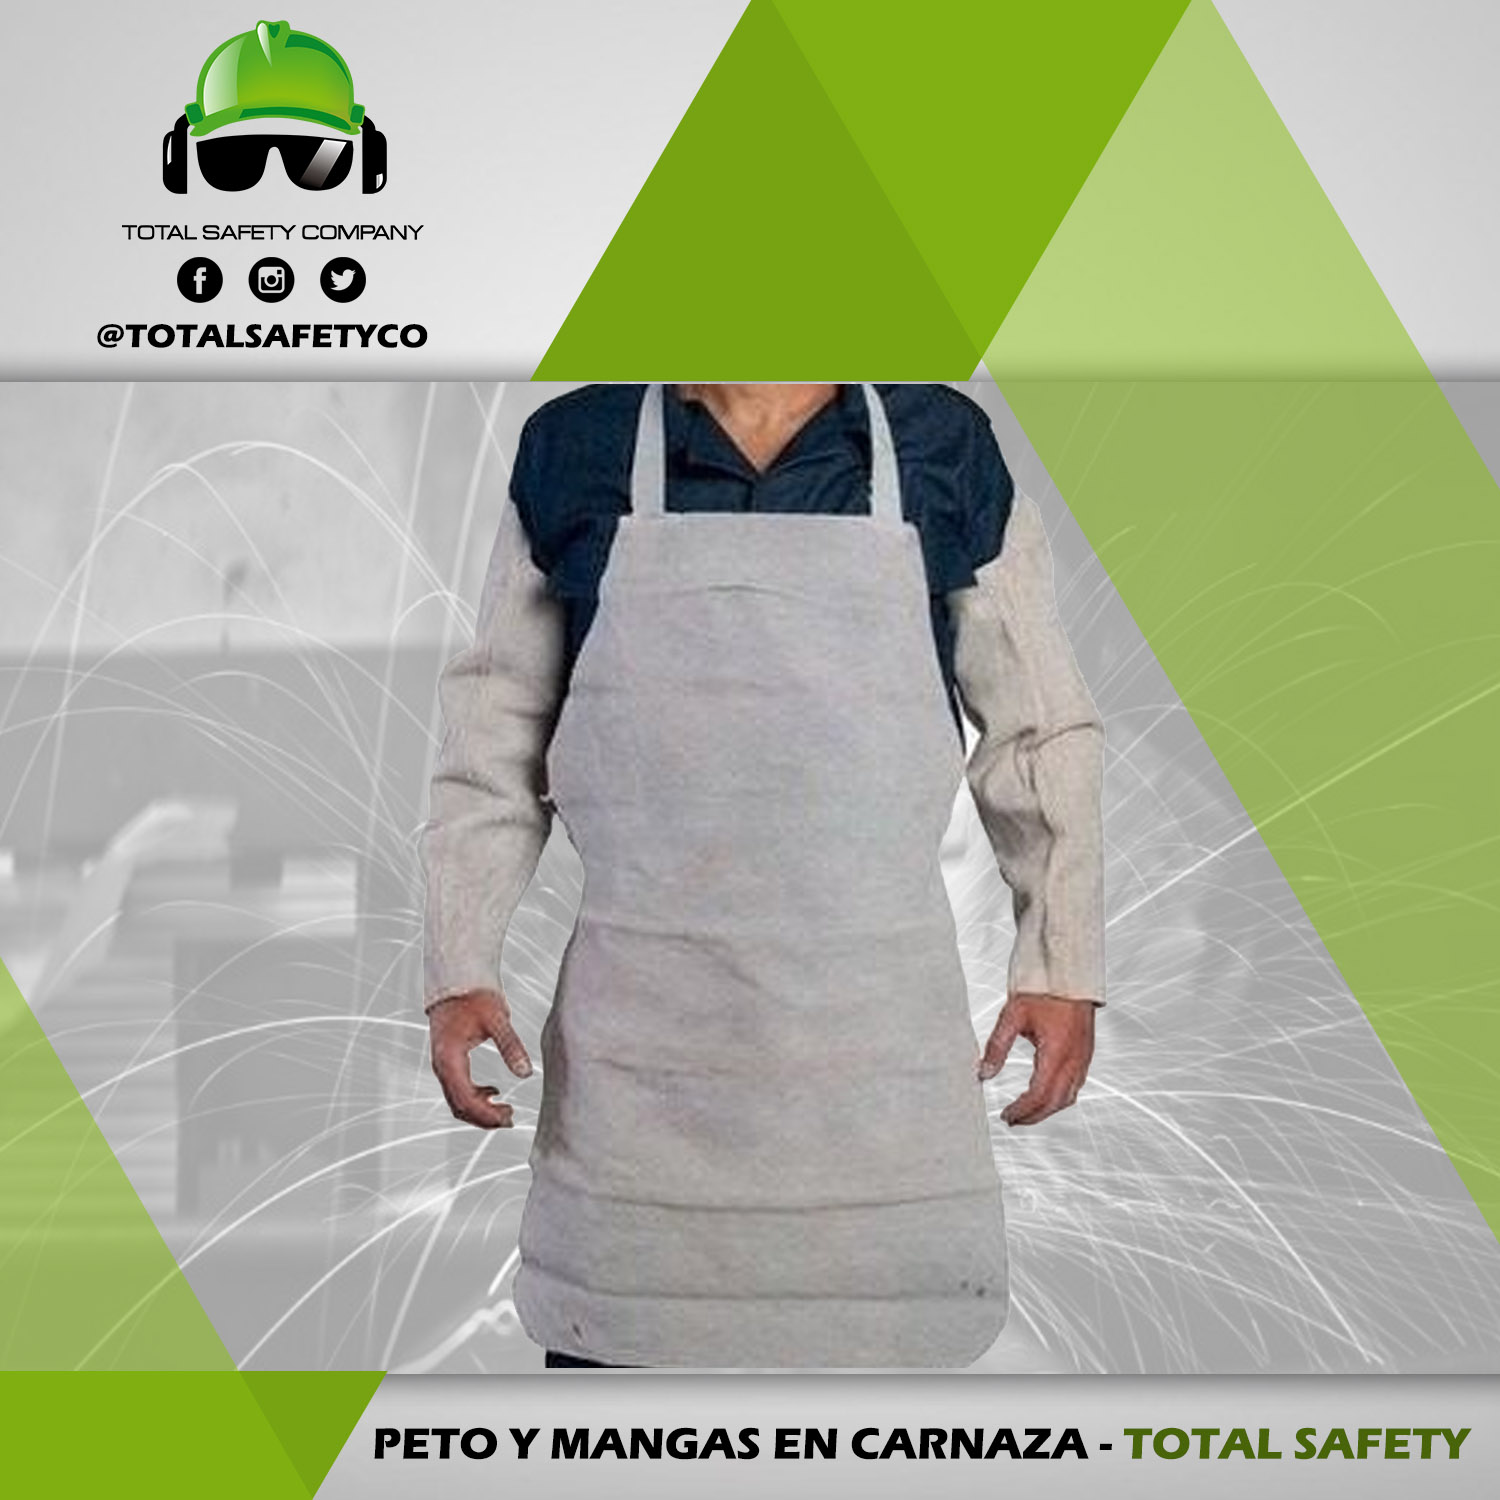 Peto y mangas en  carnaza - TOTAL SAFETY